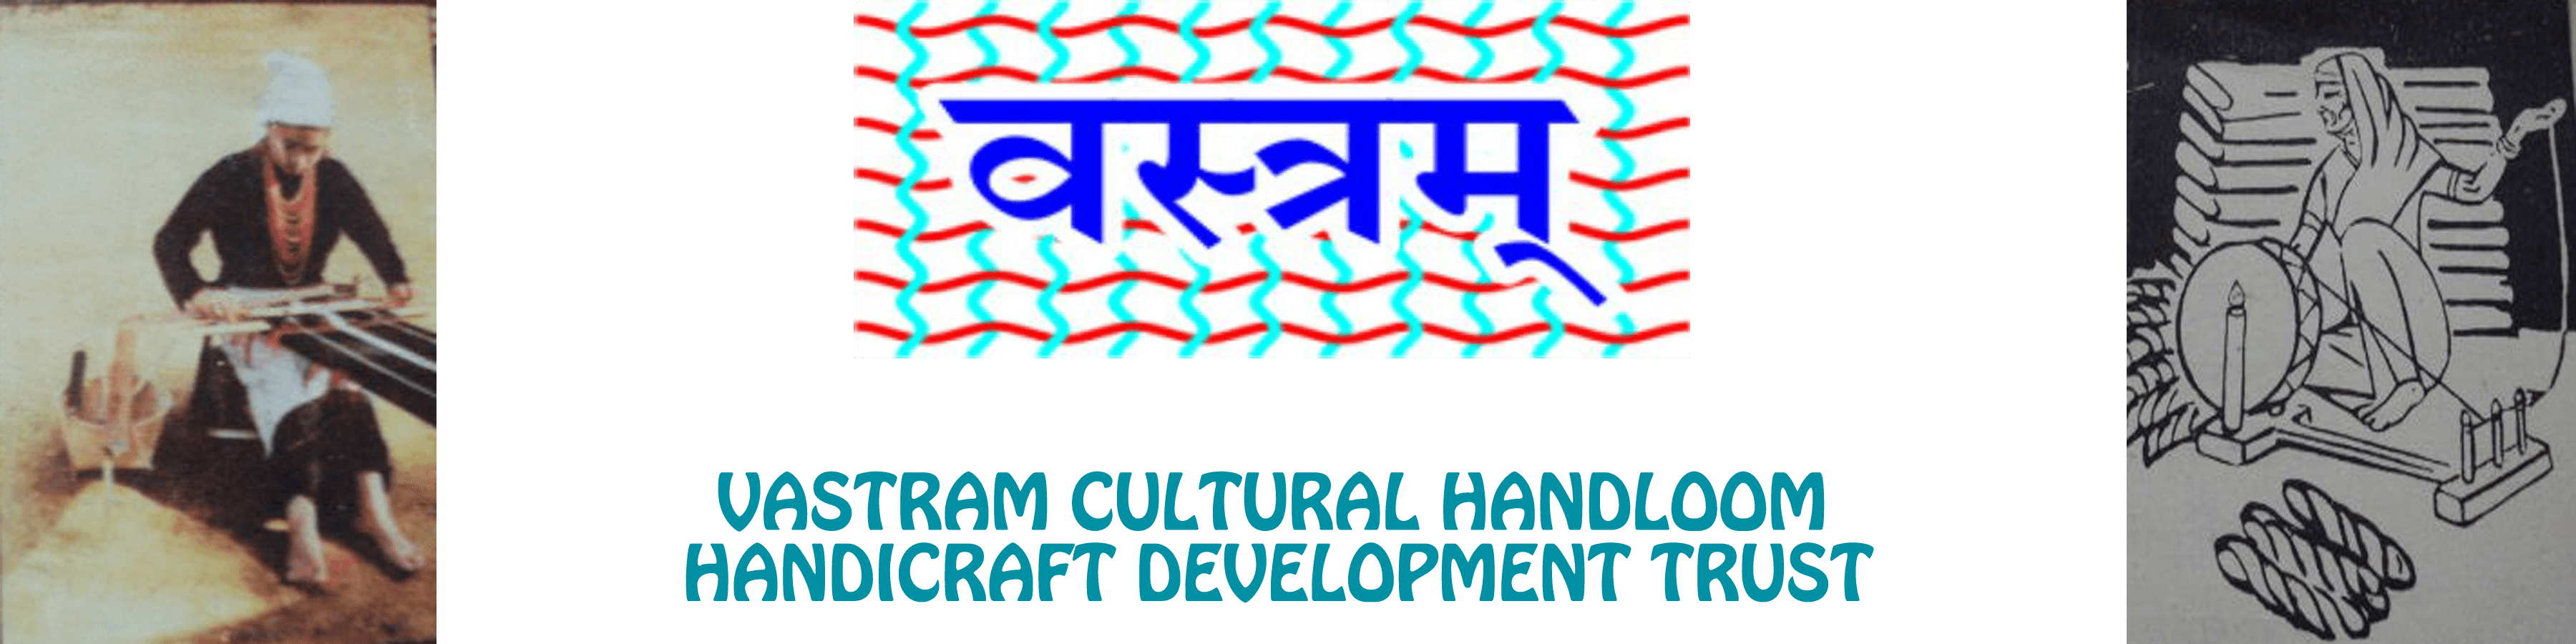 Vastram Caltural Handloom and Handicraft Development Trust